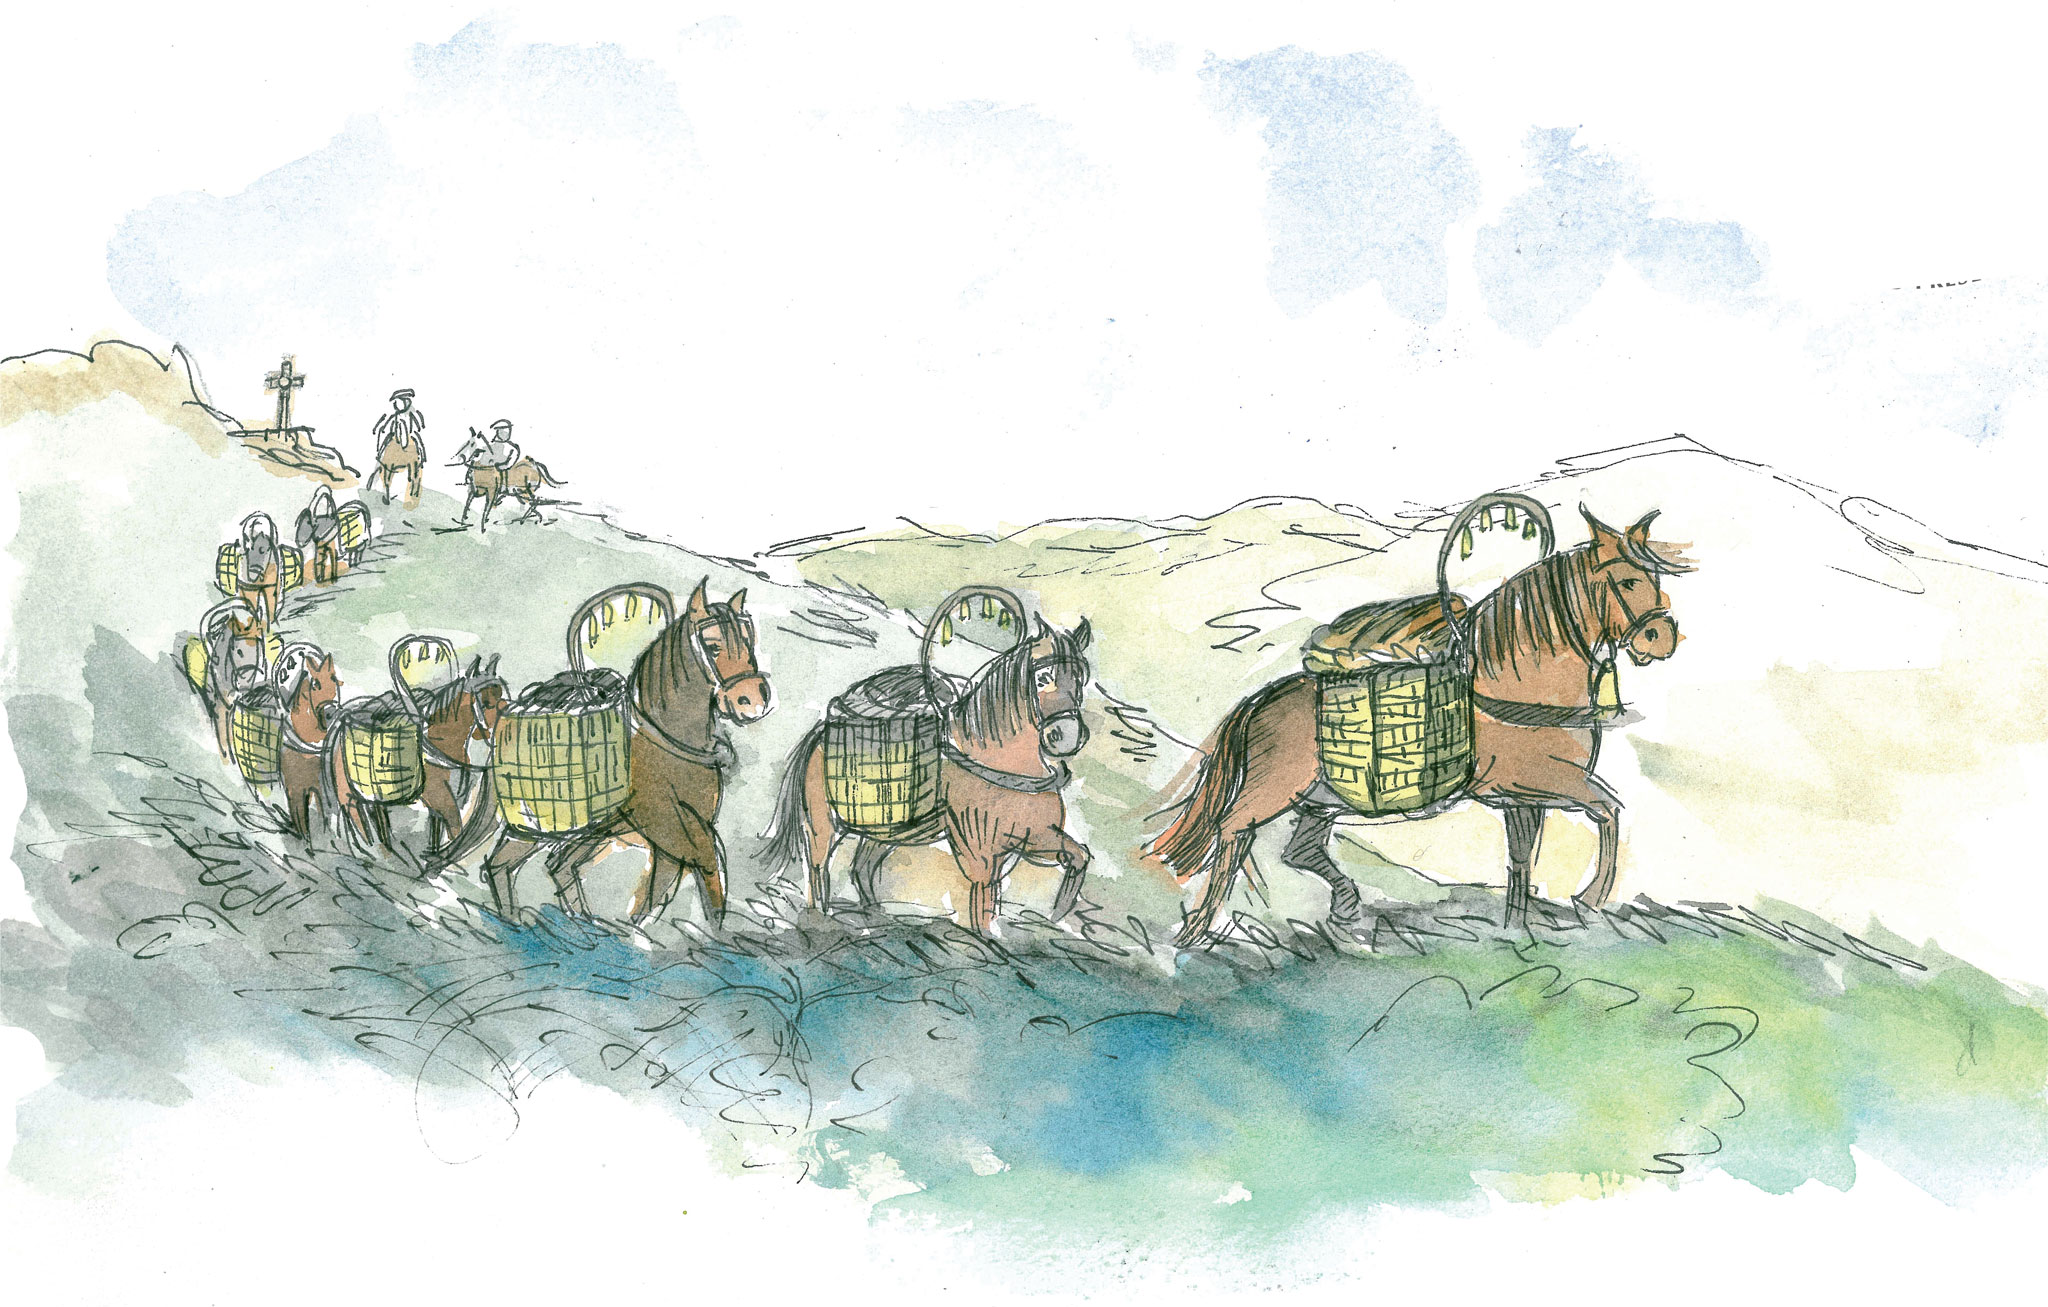 Drawing of a pack-horse train